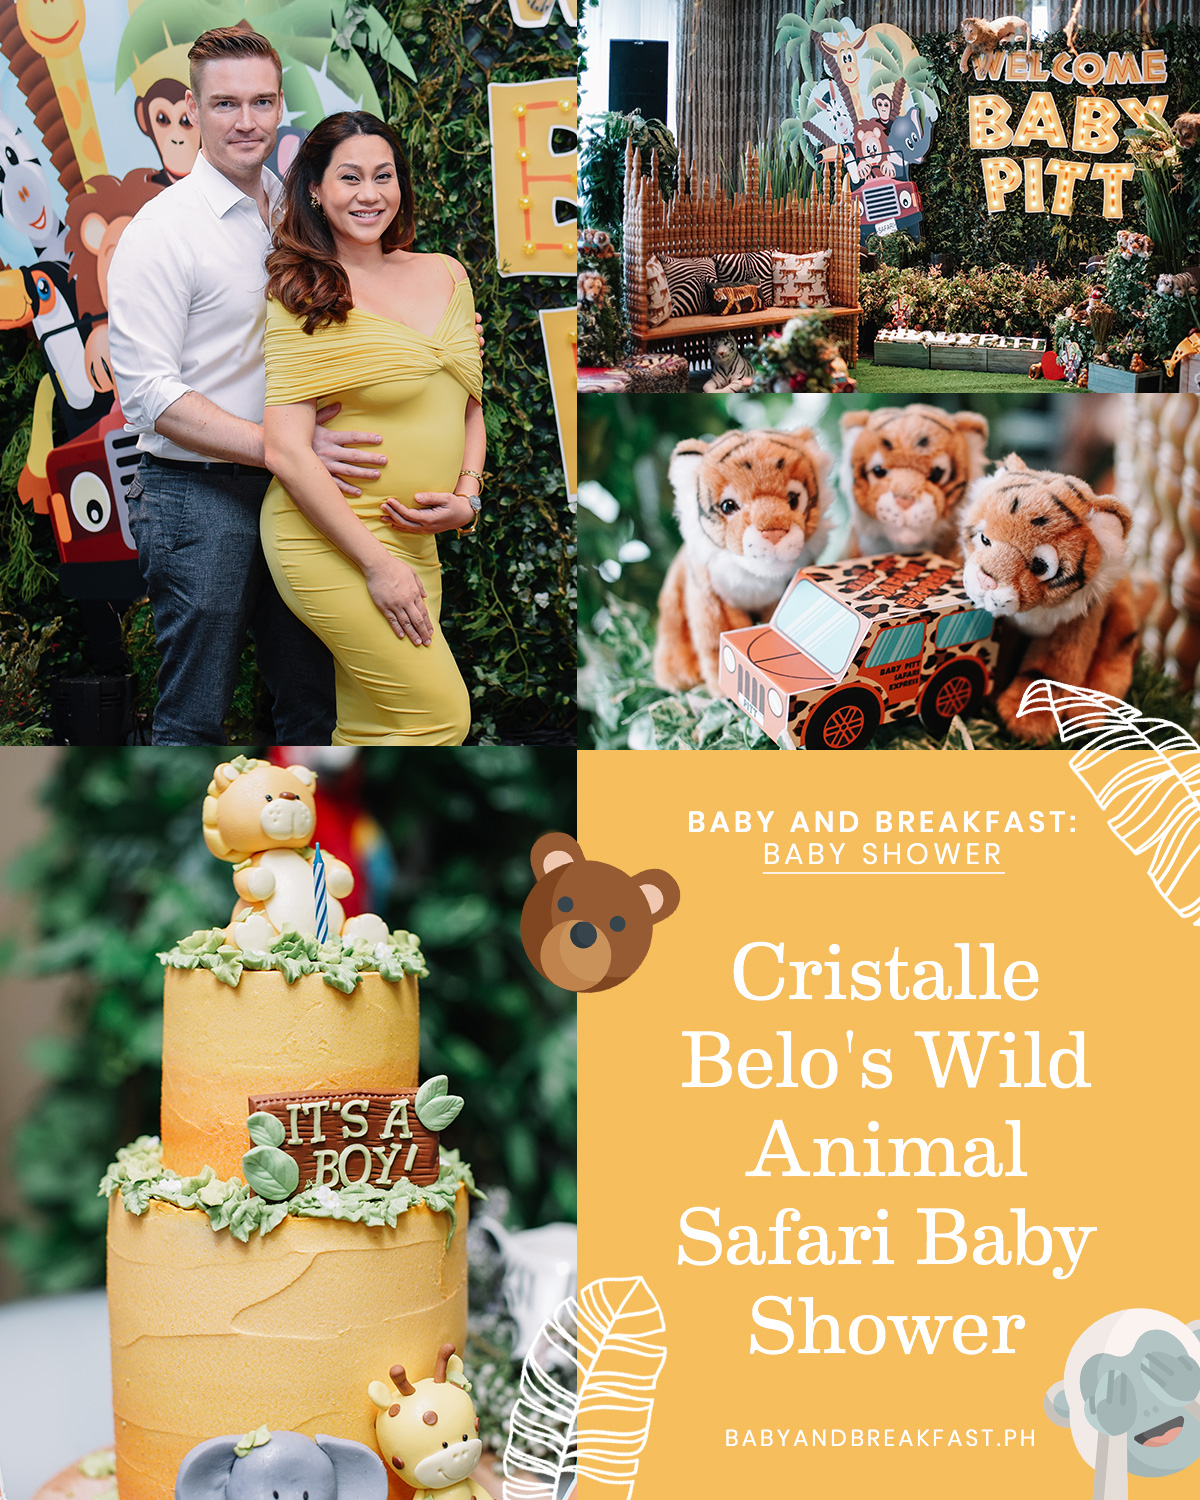 Baby and Breafkast: Baby Shower Cristalle Belo's Wild Animal Safari Baby Shower